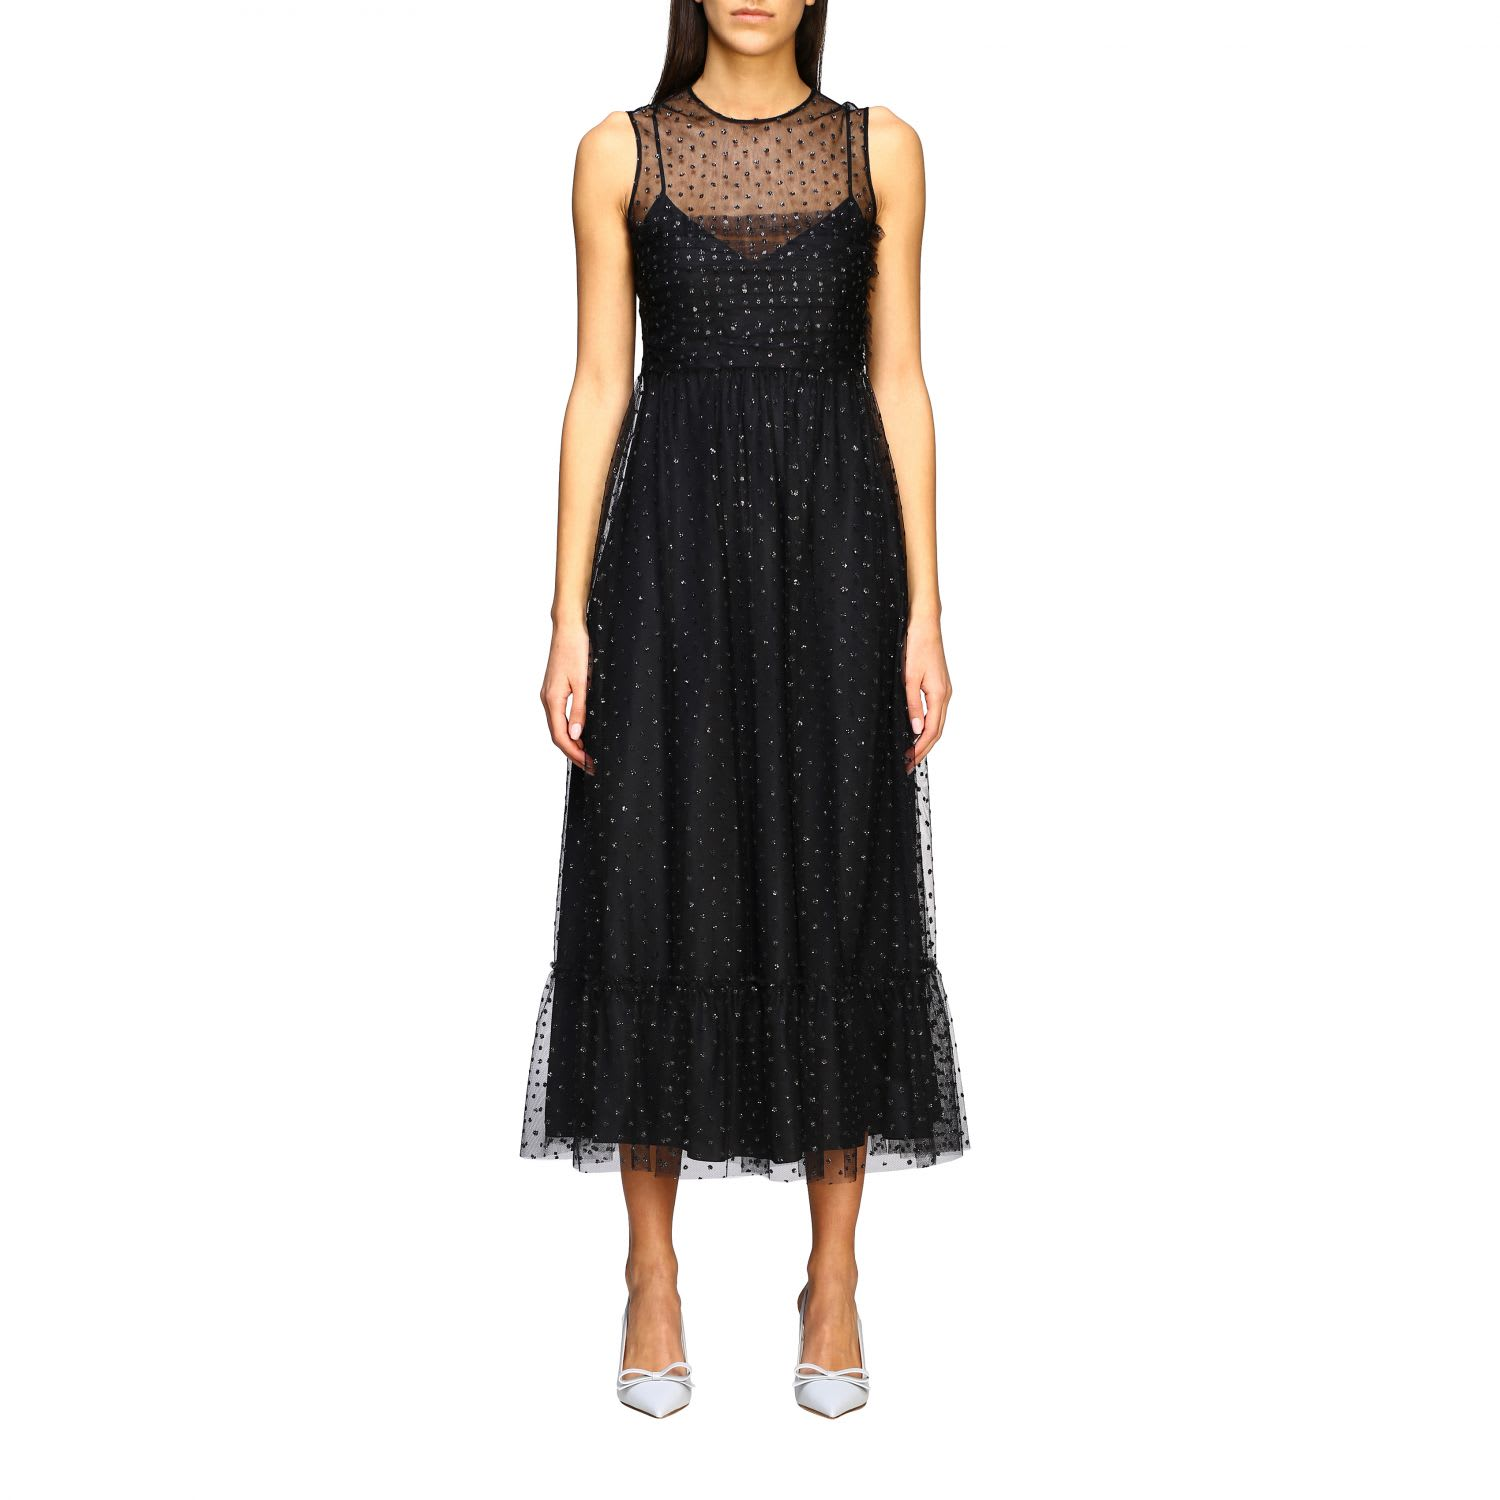 Buy Red Valentino Dress Long Red Valentino Dress In Tulle With Glitter Polka Dots online, shop RED Valentino with free shipping